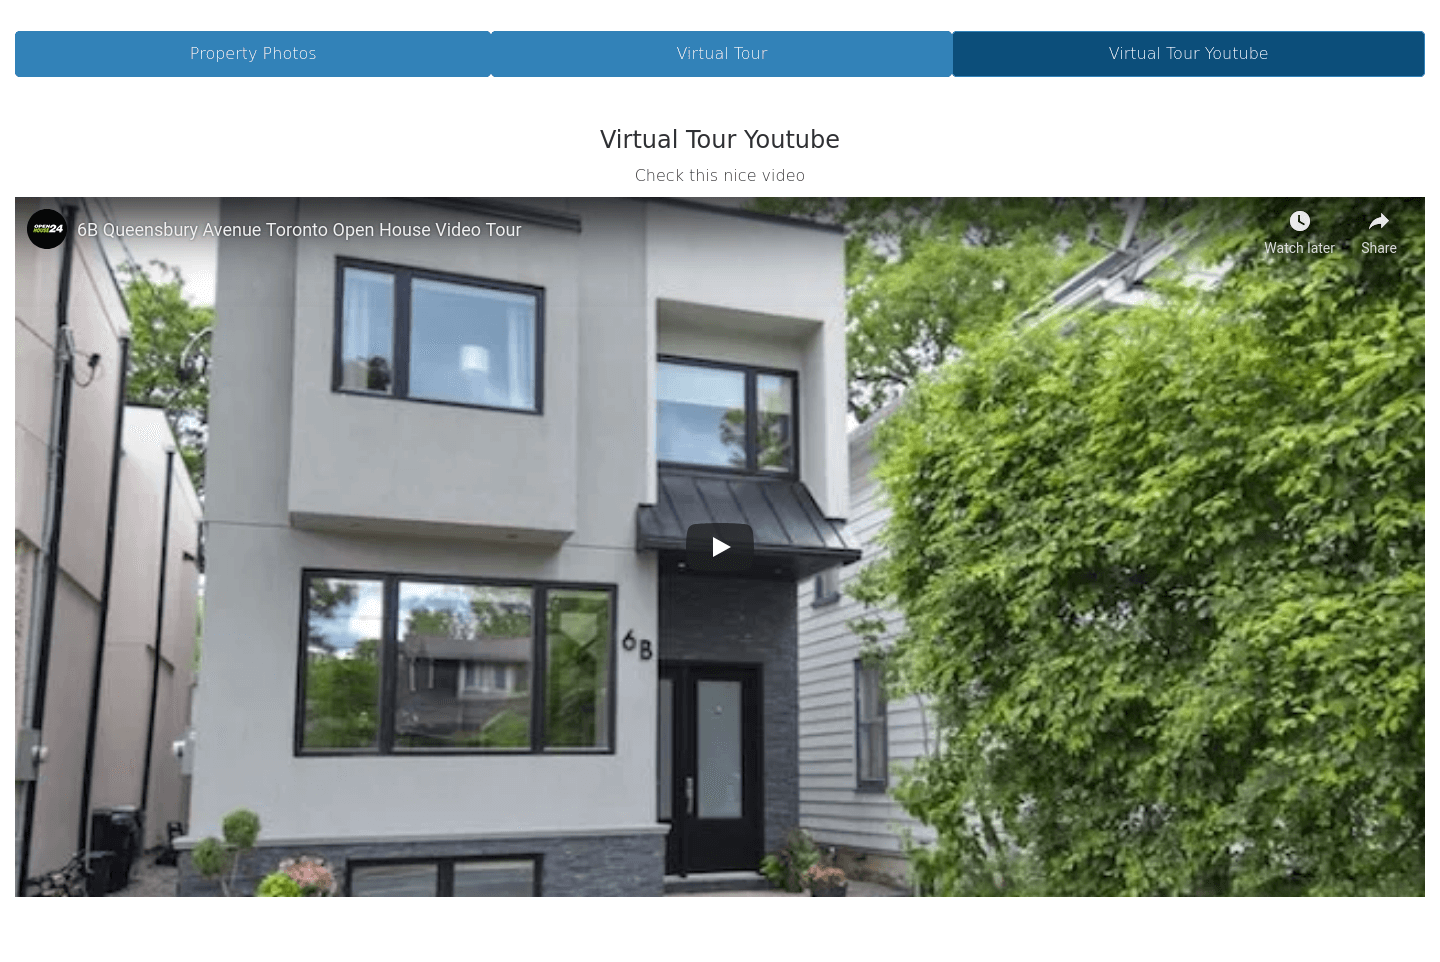 Tabs for photos and virtual tours, making the page more compact and organized. Totally compatible with Youtube videos or Matterport walkthrough.